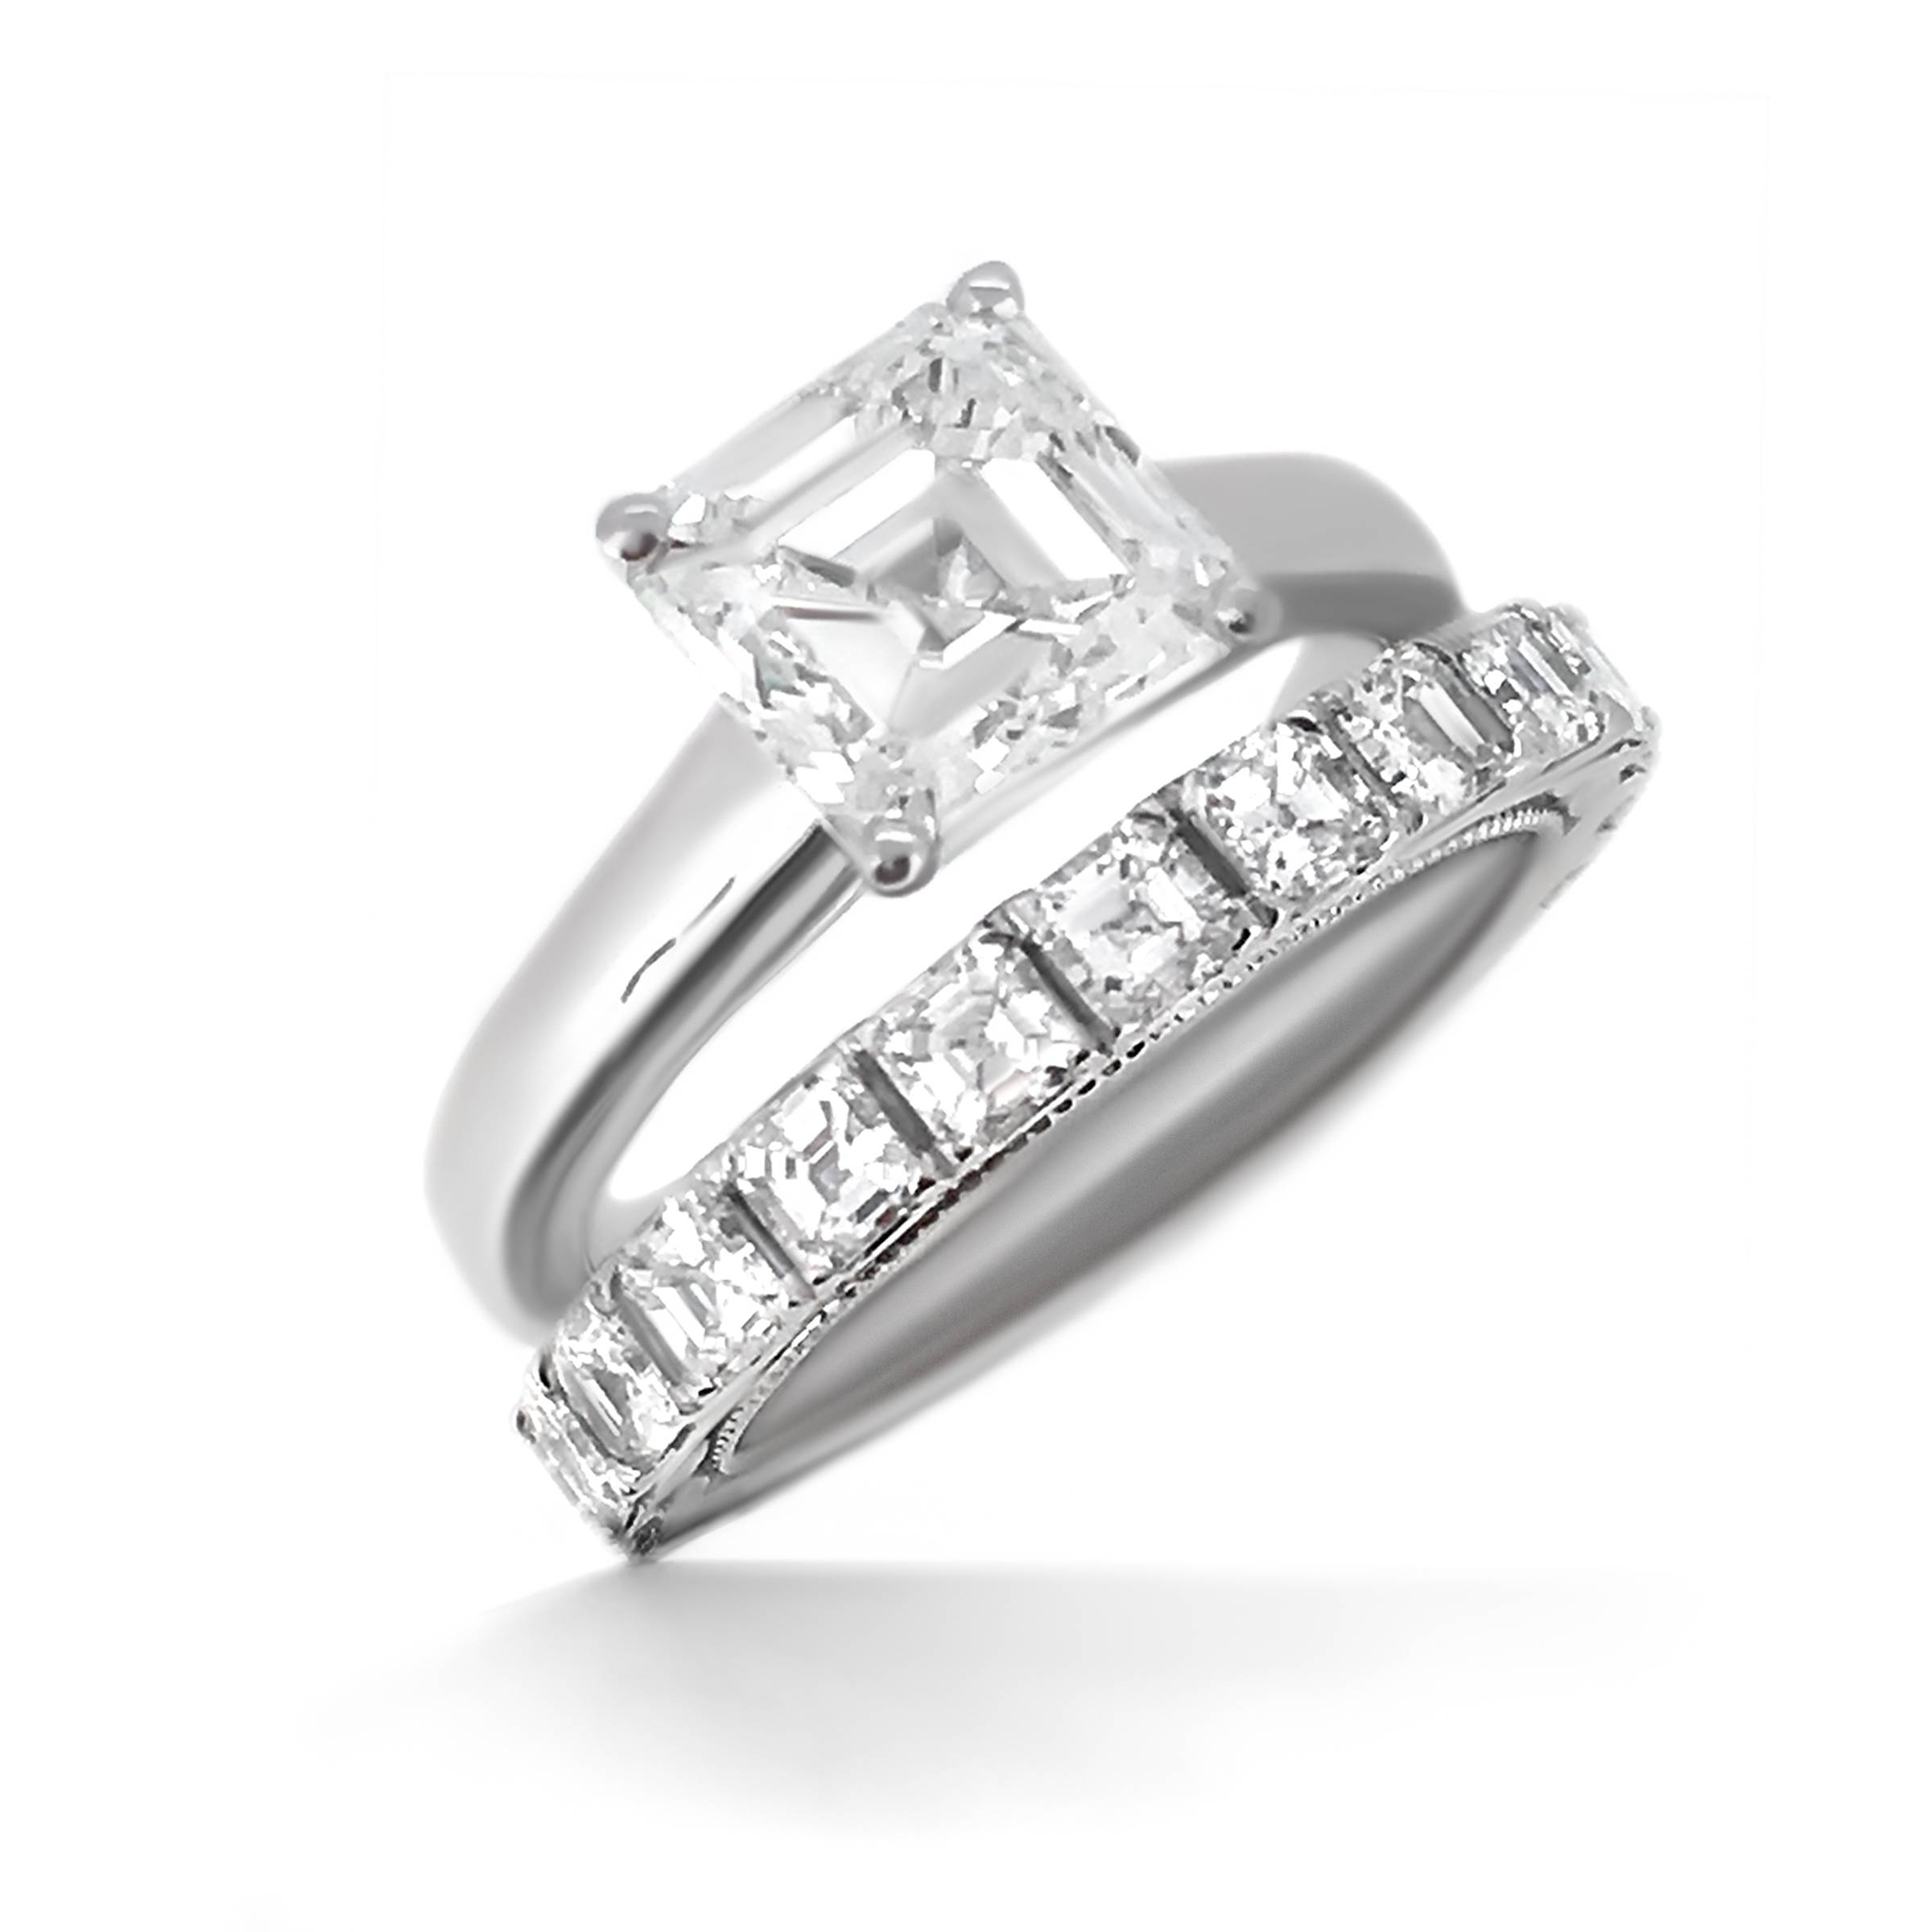 Asscher Cut Diamond Engagement Ring – Haywards – Bespoke Jewellery Regarding Newest Asscher Cut Wedding Bands (View 2 of 15)